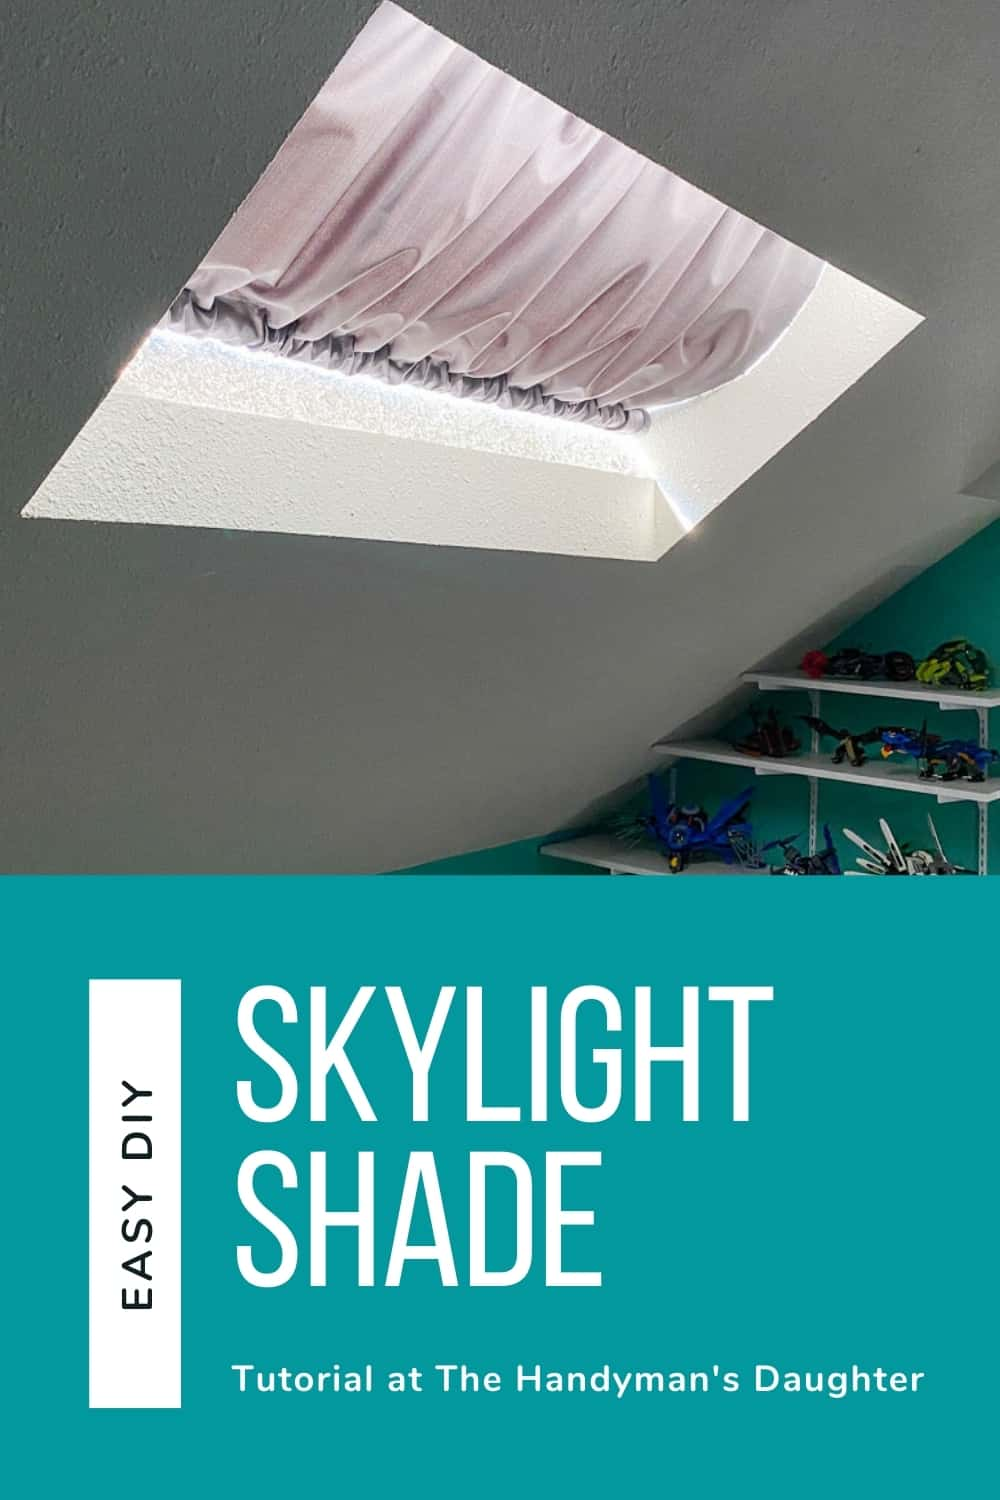 Easy DIY skylight shade